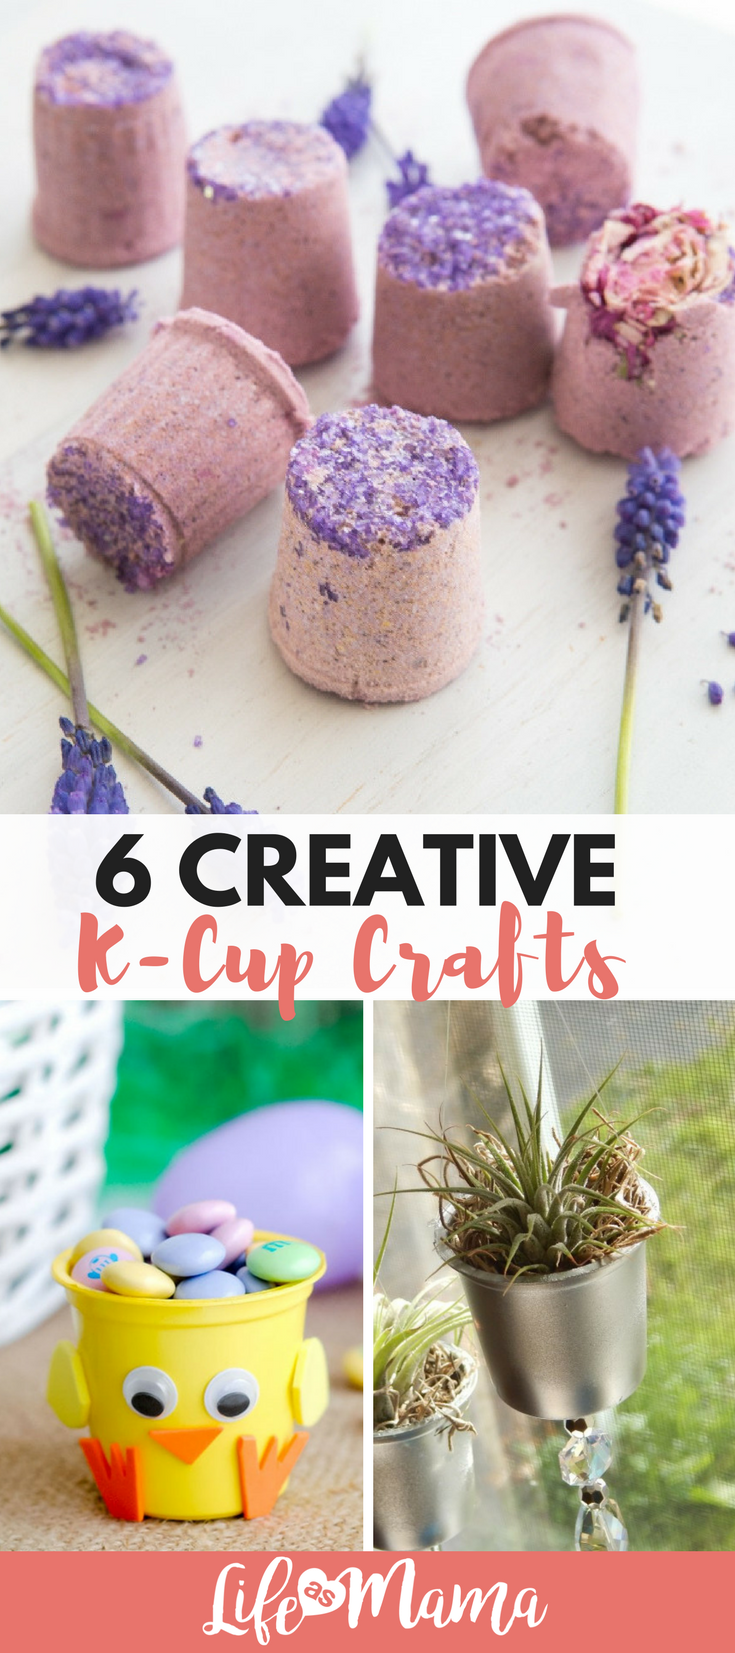 6 Creative K-Cup Crafts #recycledcrafts